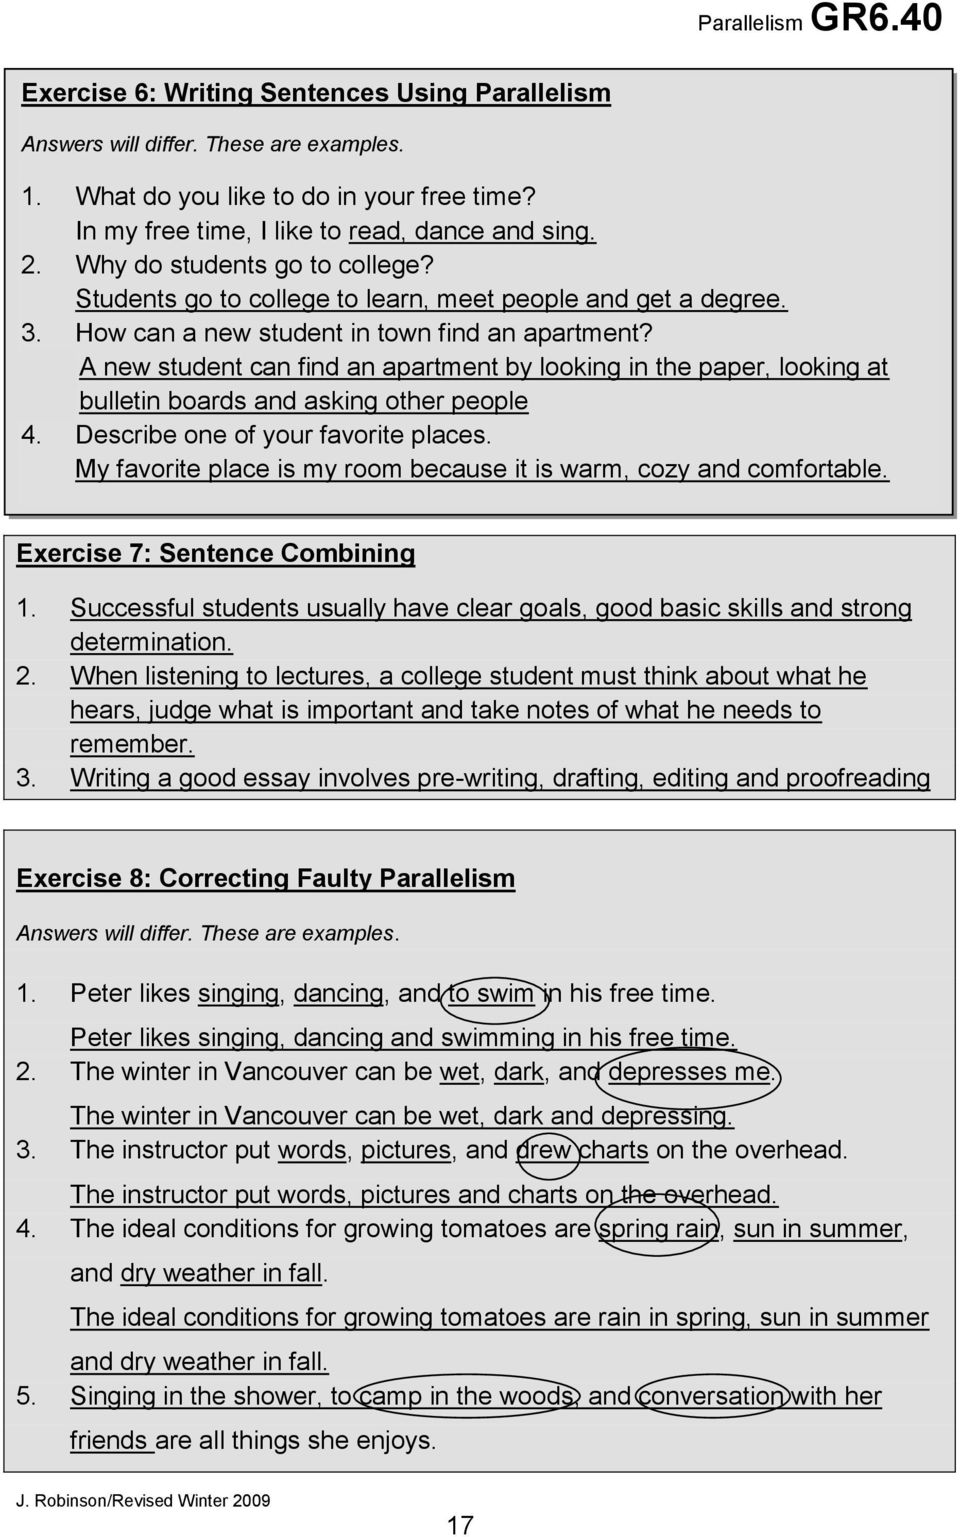 determination essay gender studies final essay corrigan queens  determination essay learning centre parallelism pdf hard work and learning centre parallelism pdf a new student